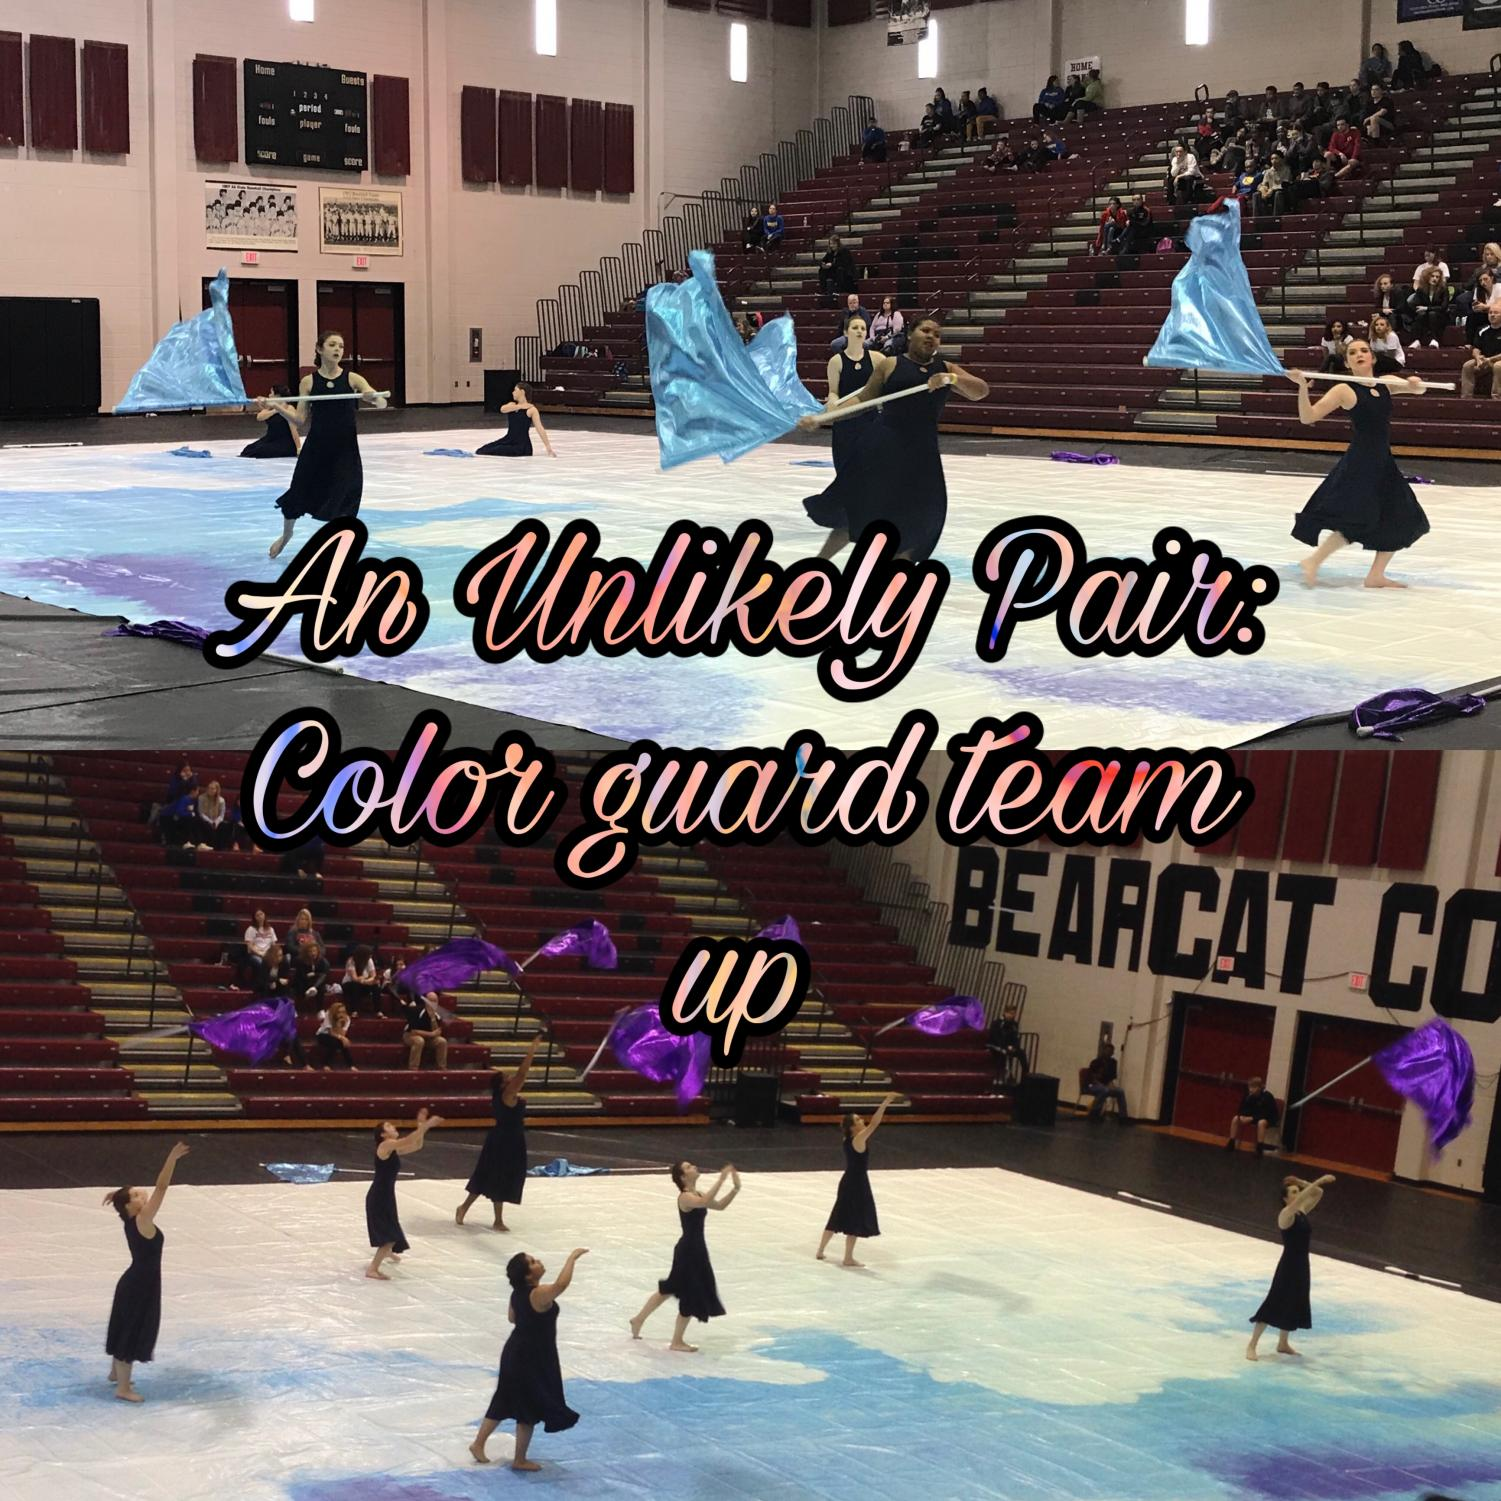 The winter guard performs their show to Lady Gaga's 'Million Reasons.' The team has worked tirelessly with their partner school, Reagan, this season.